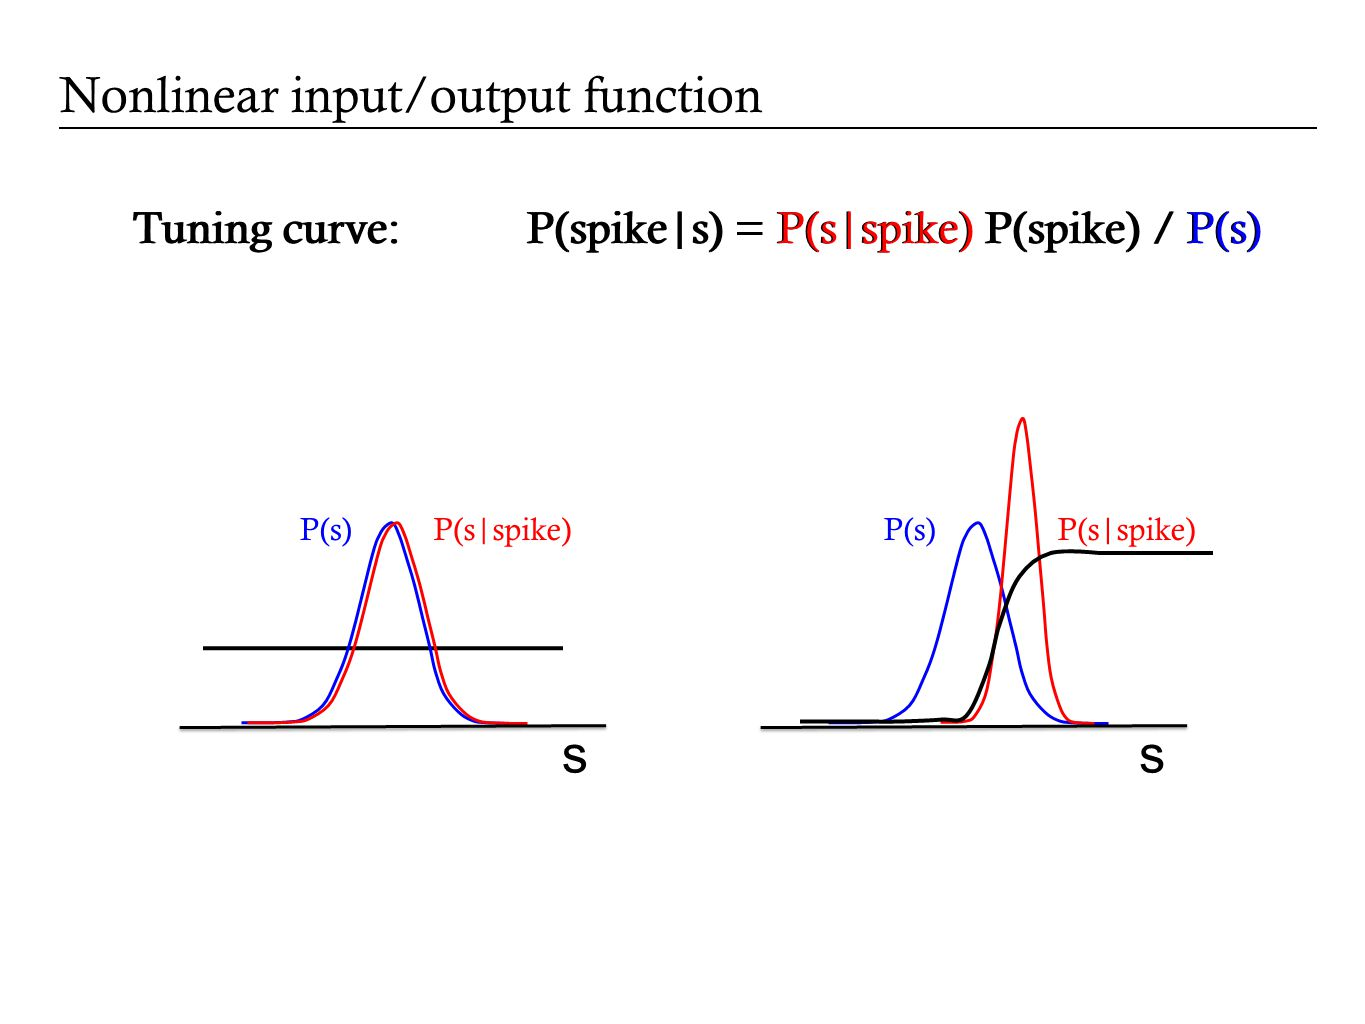 Tuning curve: P(spike|s) = P(s|spike) P(spike) / P(s) Nonlinear input/output function Tuning curve: P(spike|s) = P(s|spike) P(spike) / P(s) s P(s|spike)P(s) s P(s|spike)P(s)